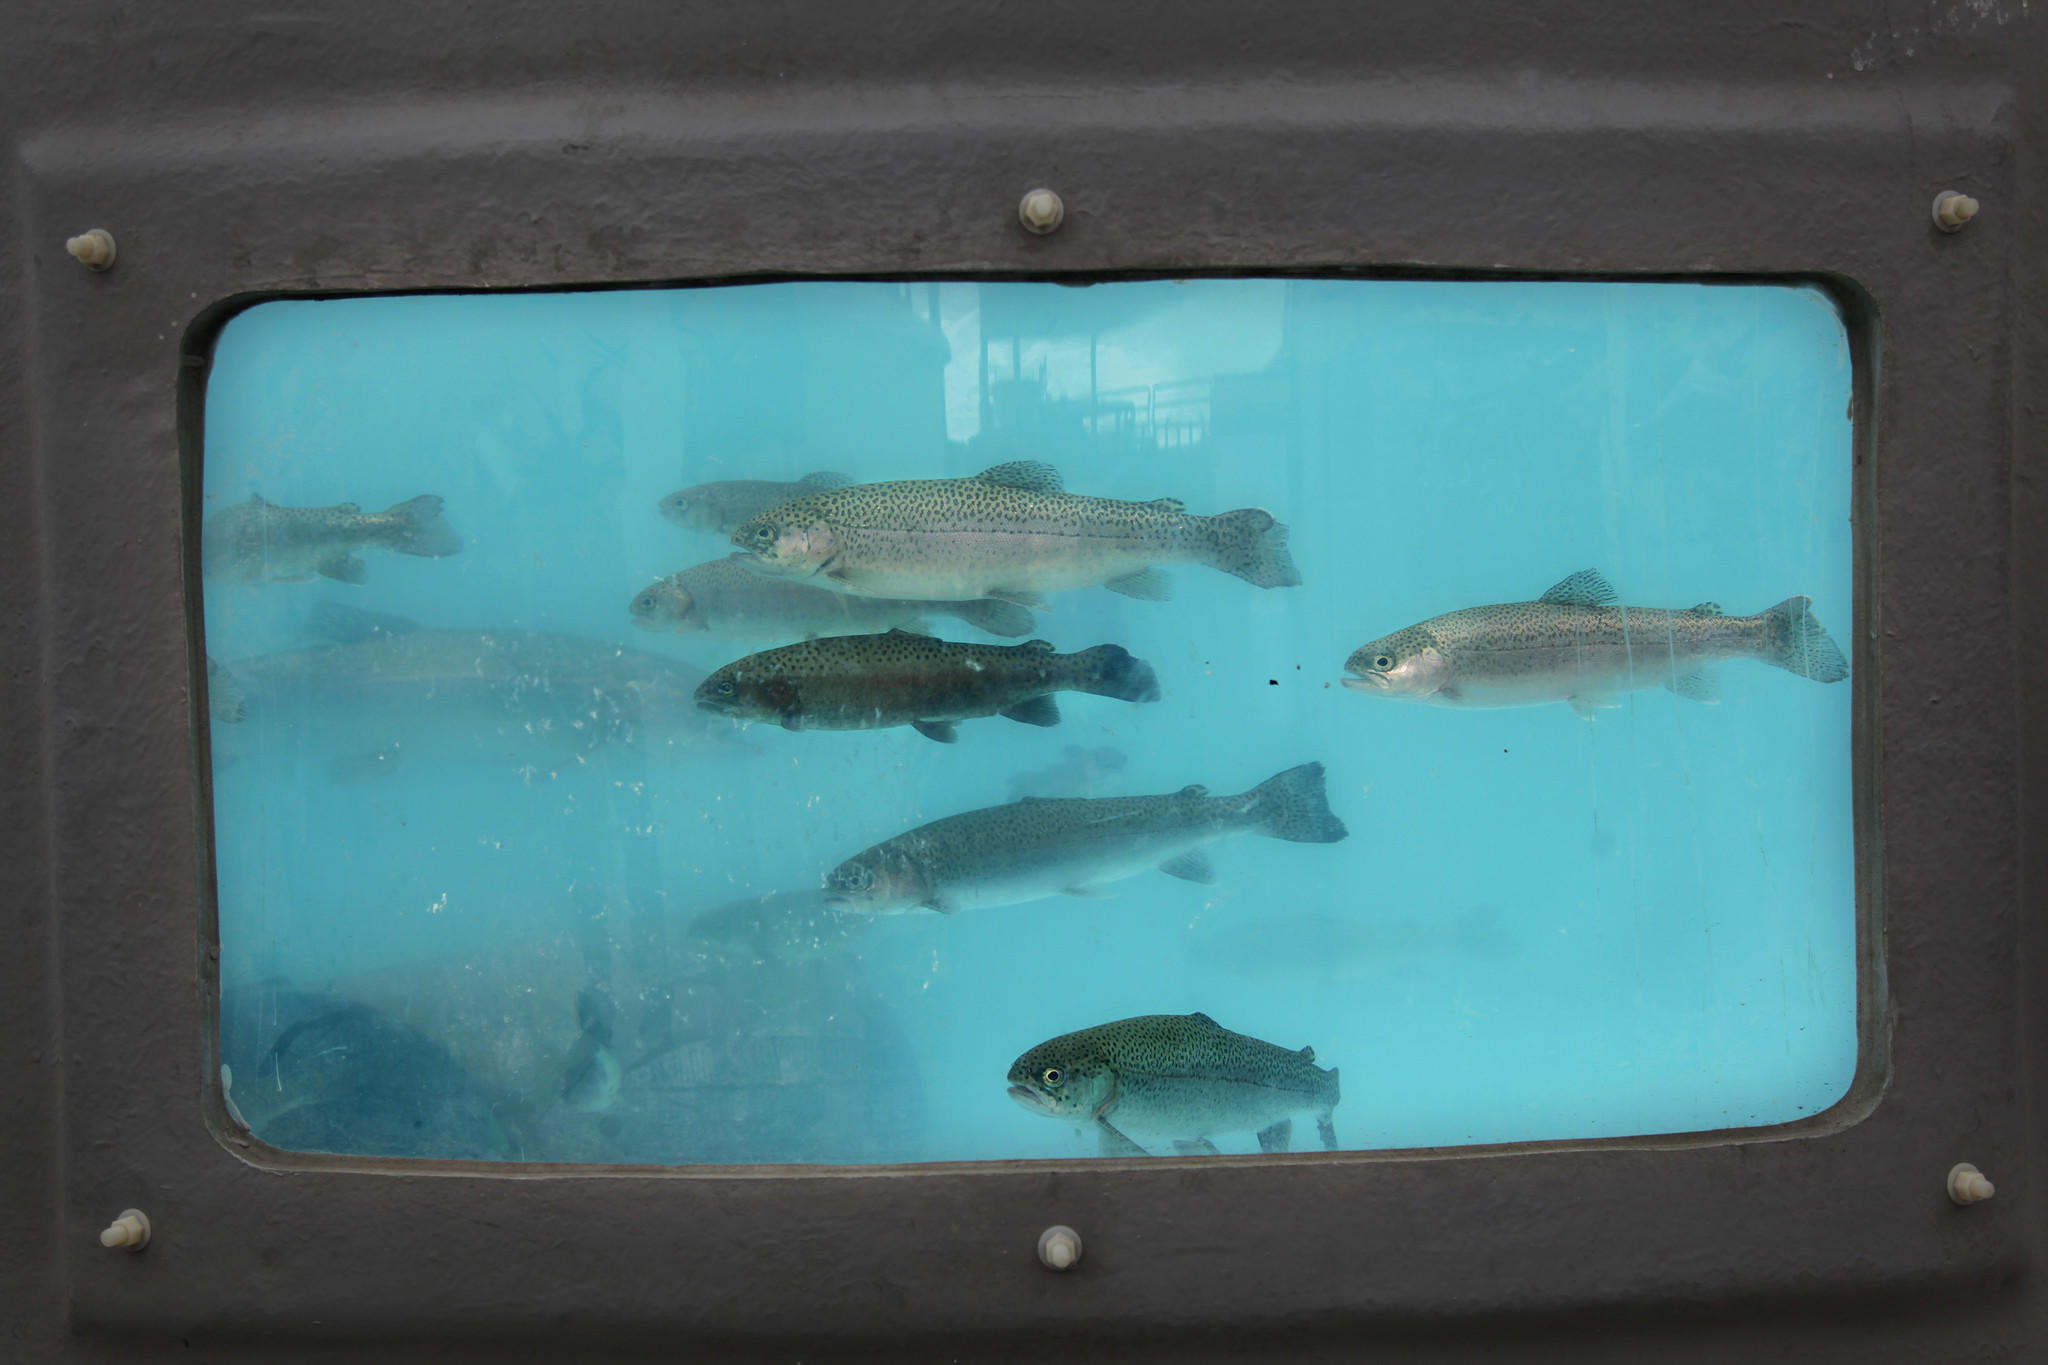 Rainbow trout -- some of which for still unknown reasons develop into steelhead -- hang out in a holding tank awaiting their debut at the Aquarium of the Pacific. The new exhibit showcasing them will open May 23.